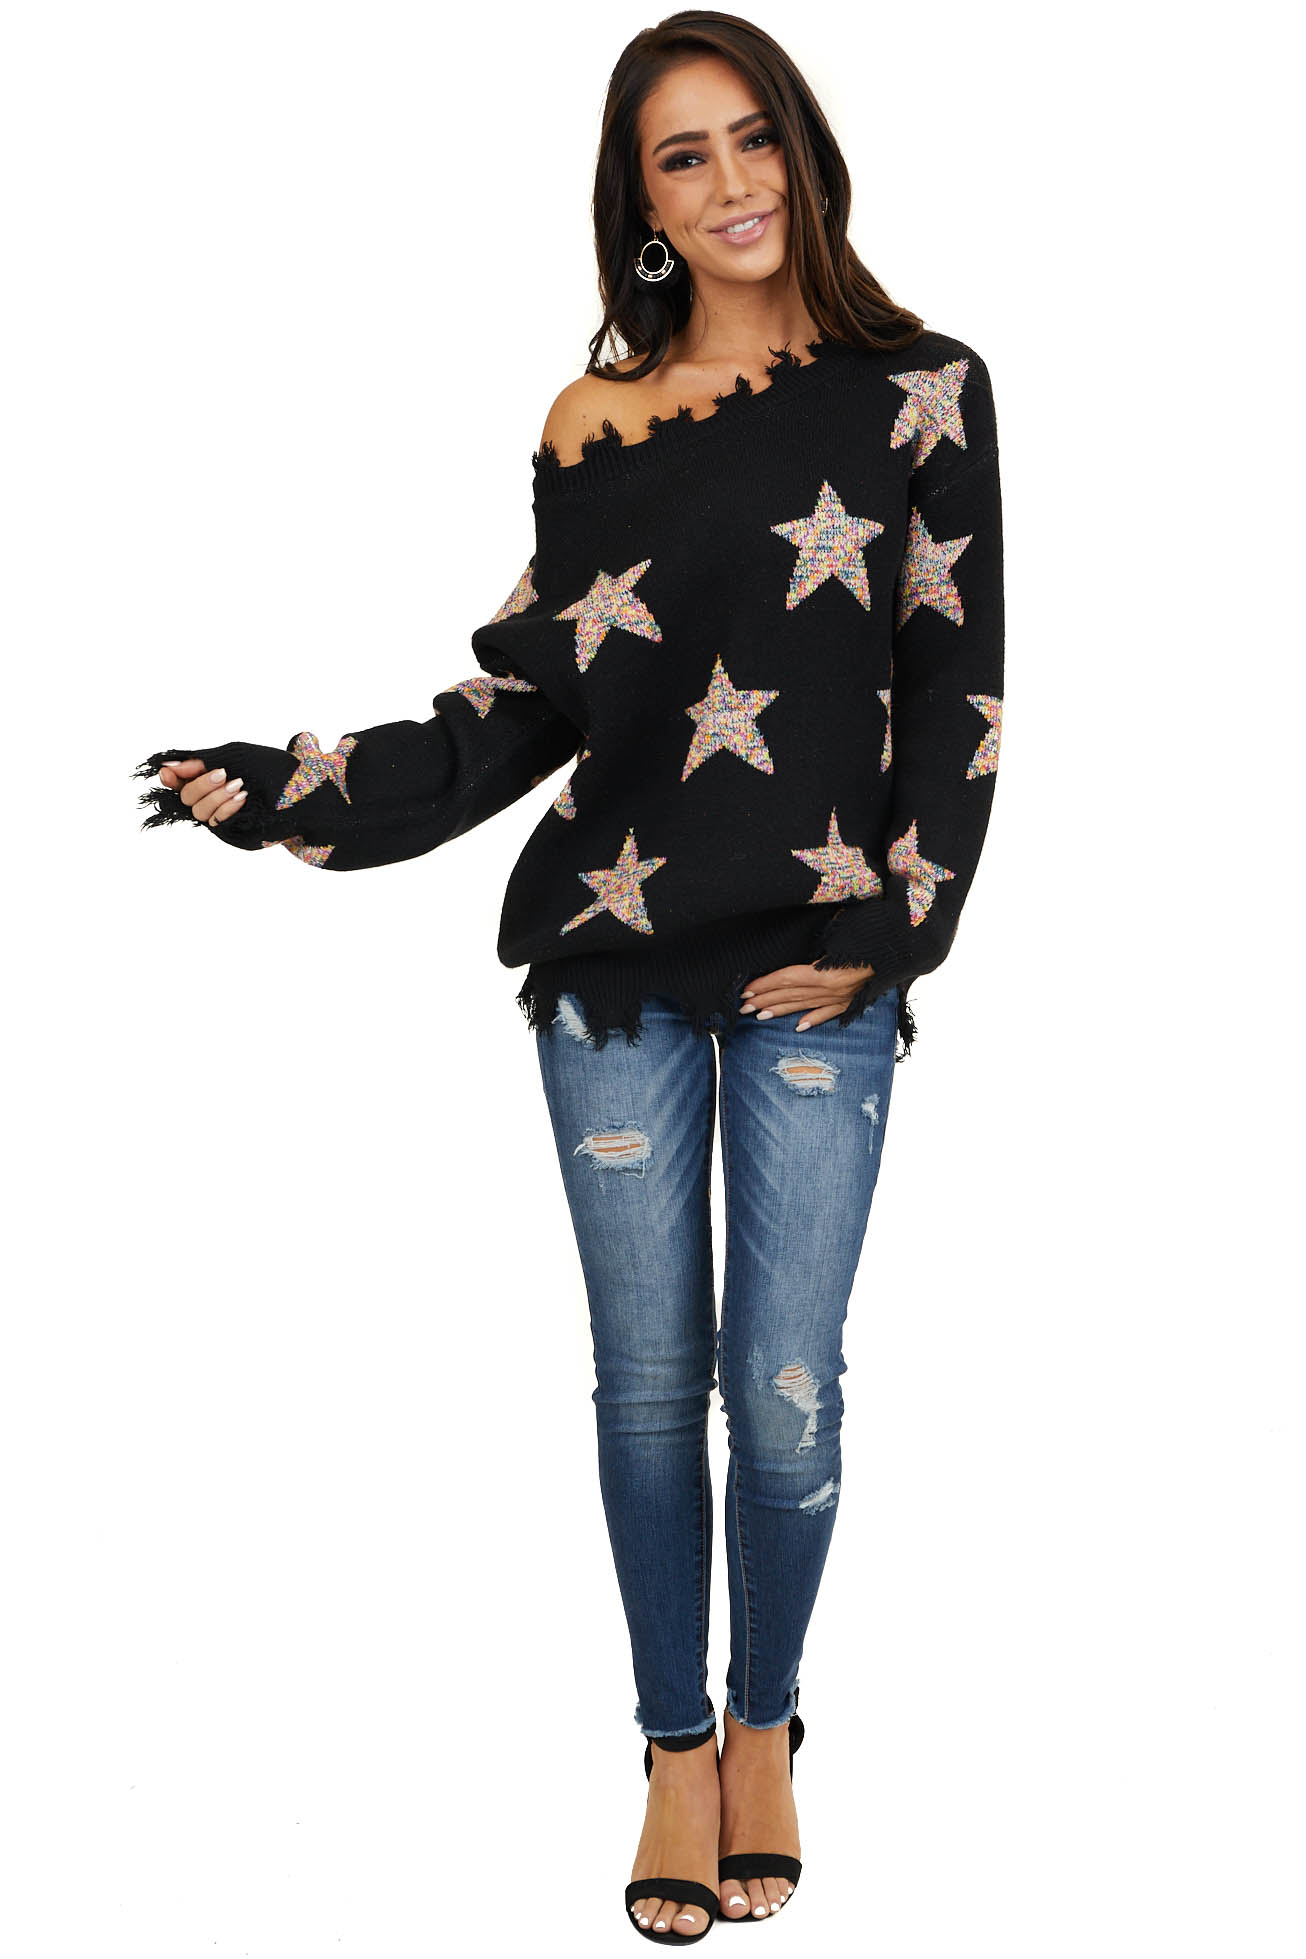 Black Sweater with Rainbow Stars and Distressed Details